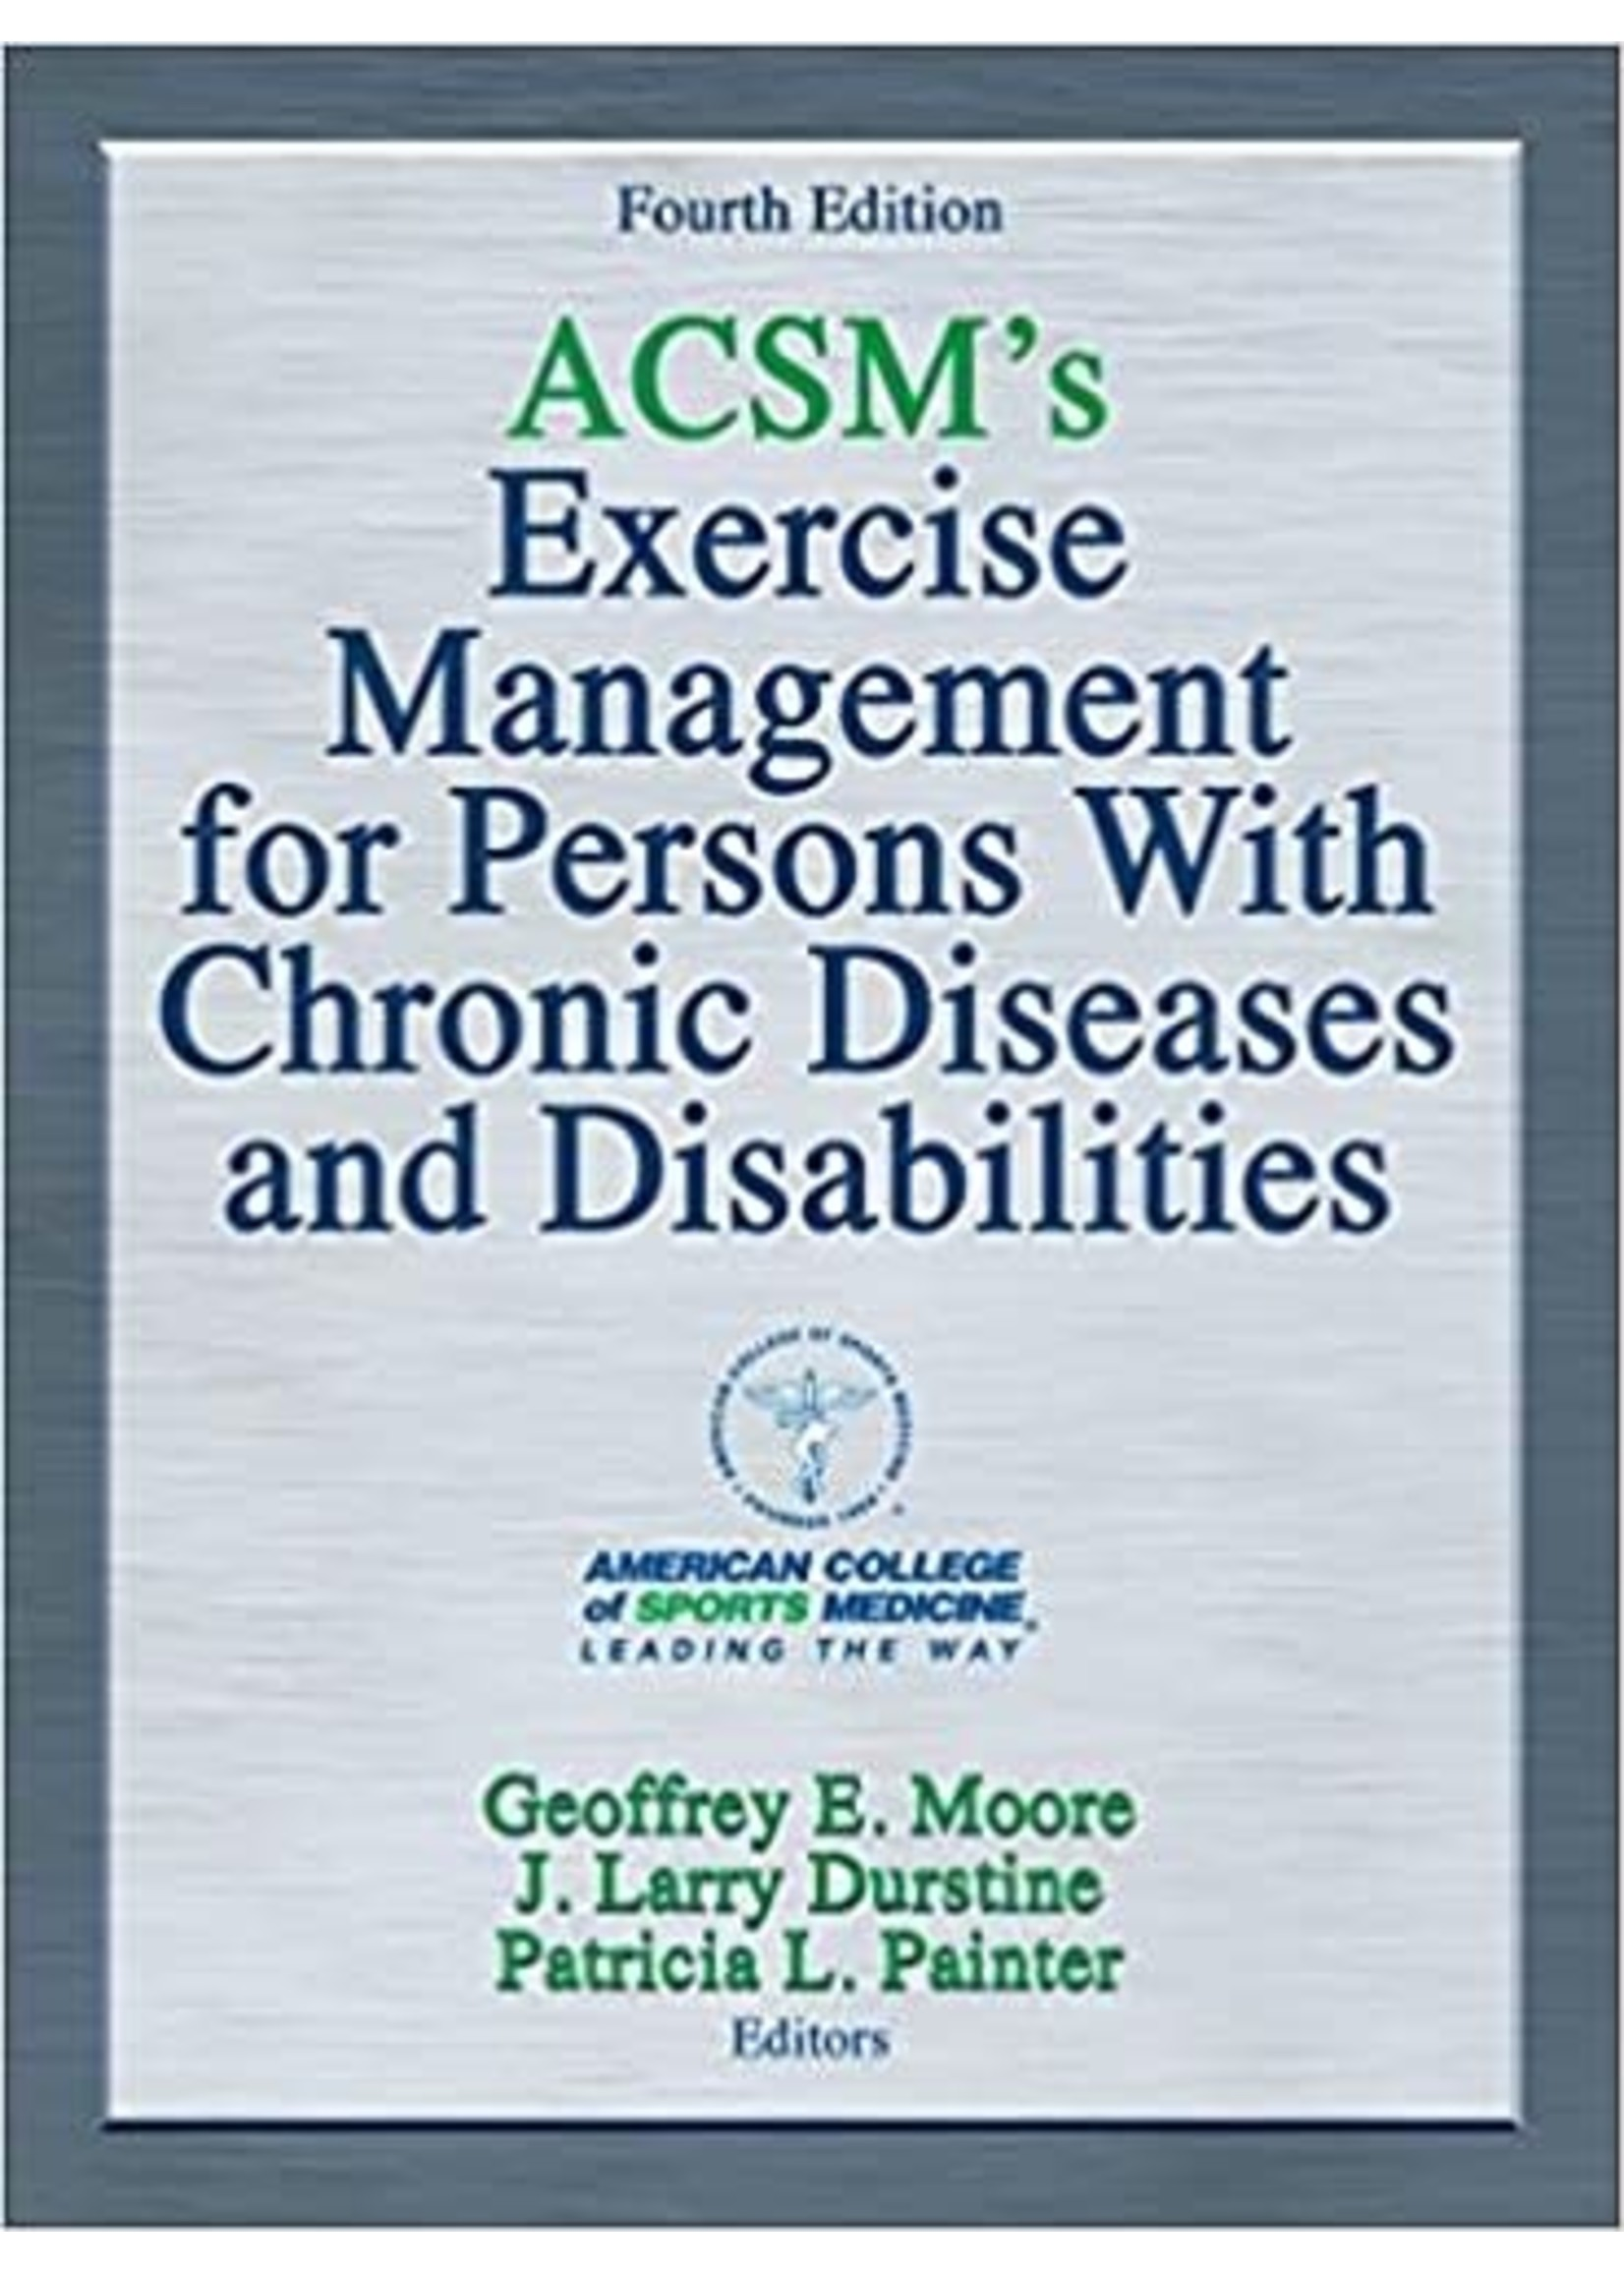 EXNS481 ACSM 'S EXERCISE MGT FOR CHRONIC DISEASE